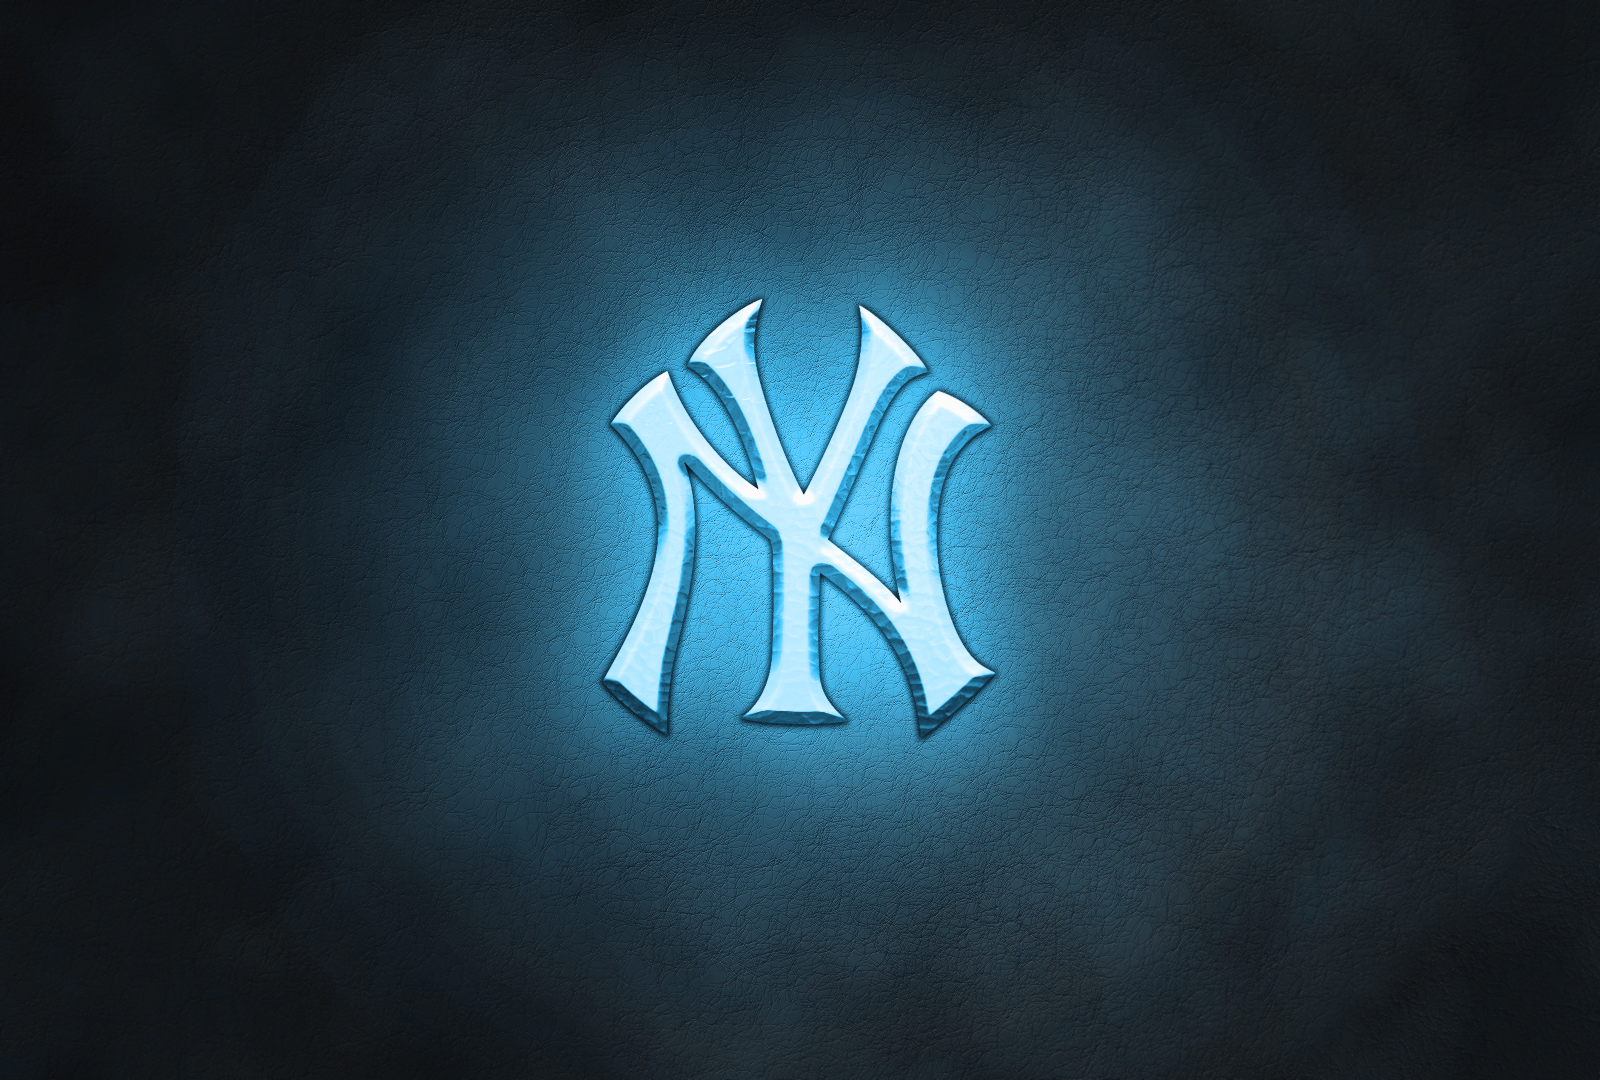 New York Yankees Bronx New York 8645672 likes 173860 talking about this This is the official Facebook of the 27time World Series champions